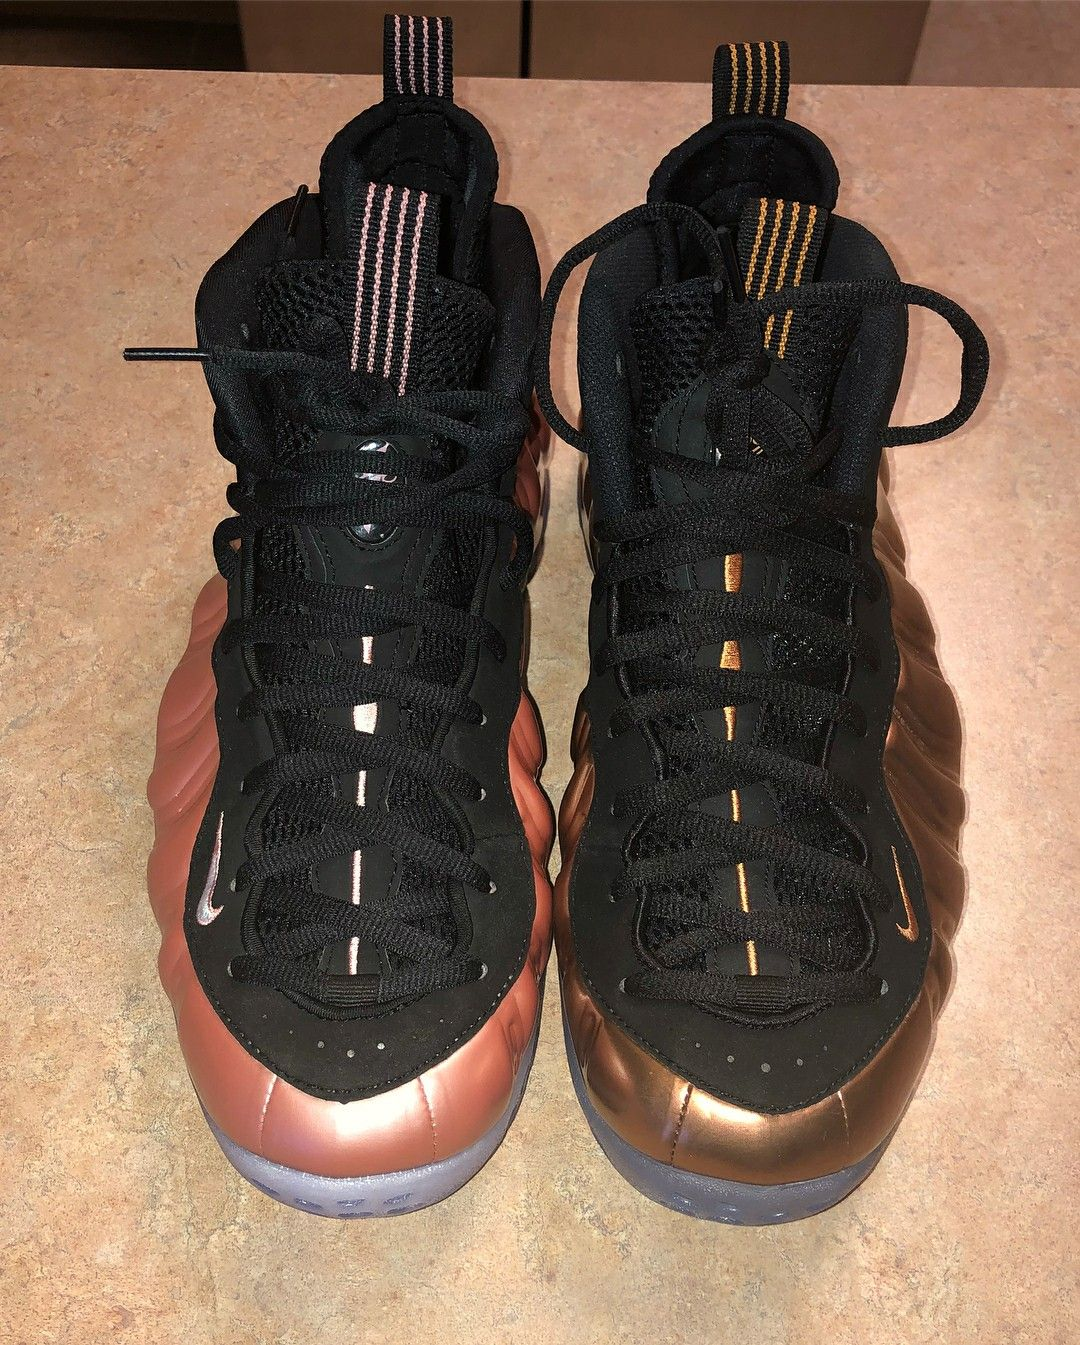 buy popular de2fa 657c2 Elemental Rose vs Copper Foamposite.